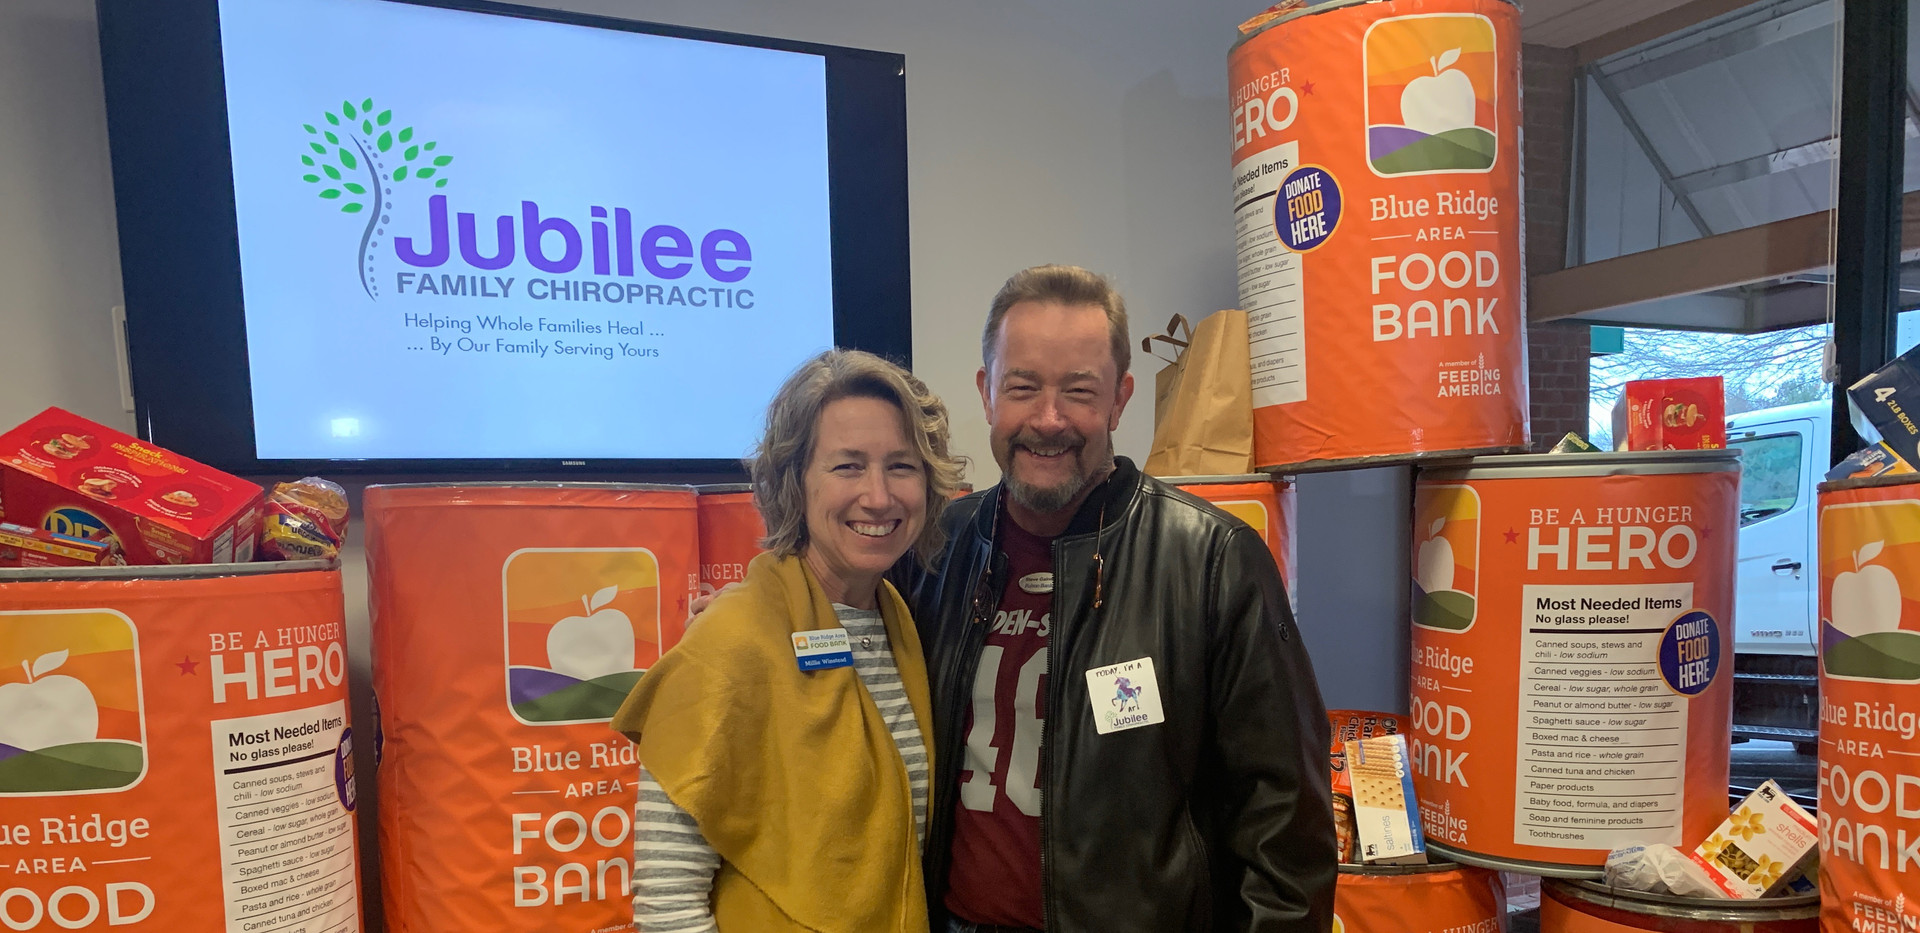 Jubilee Family Chiropractic 2020 Blue Ridge Food Drive. 037